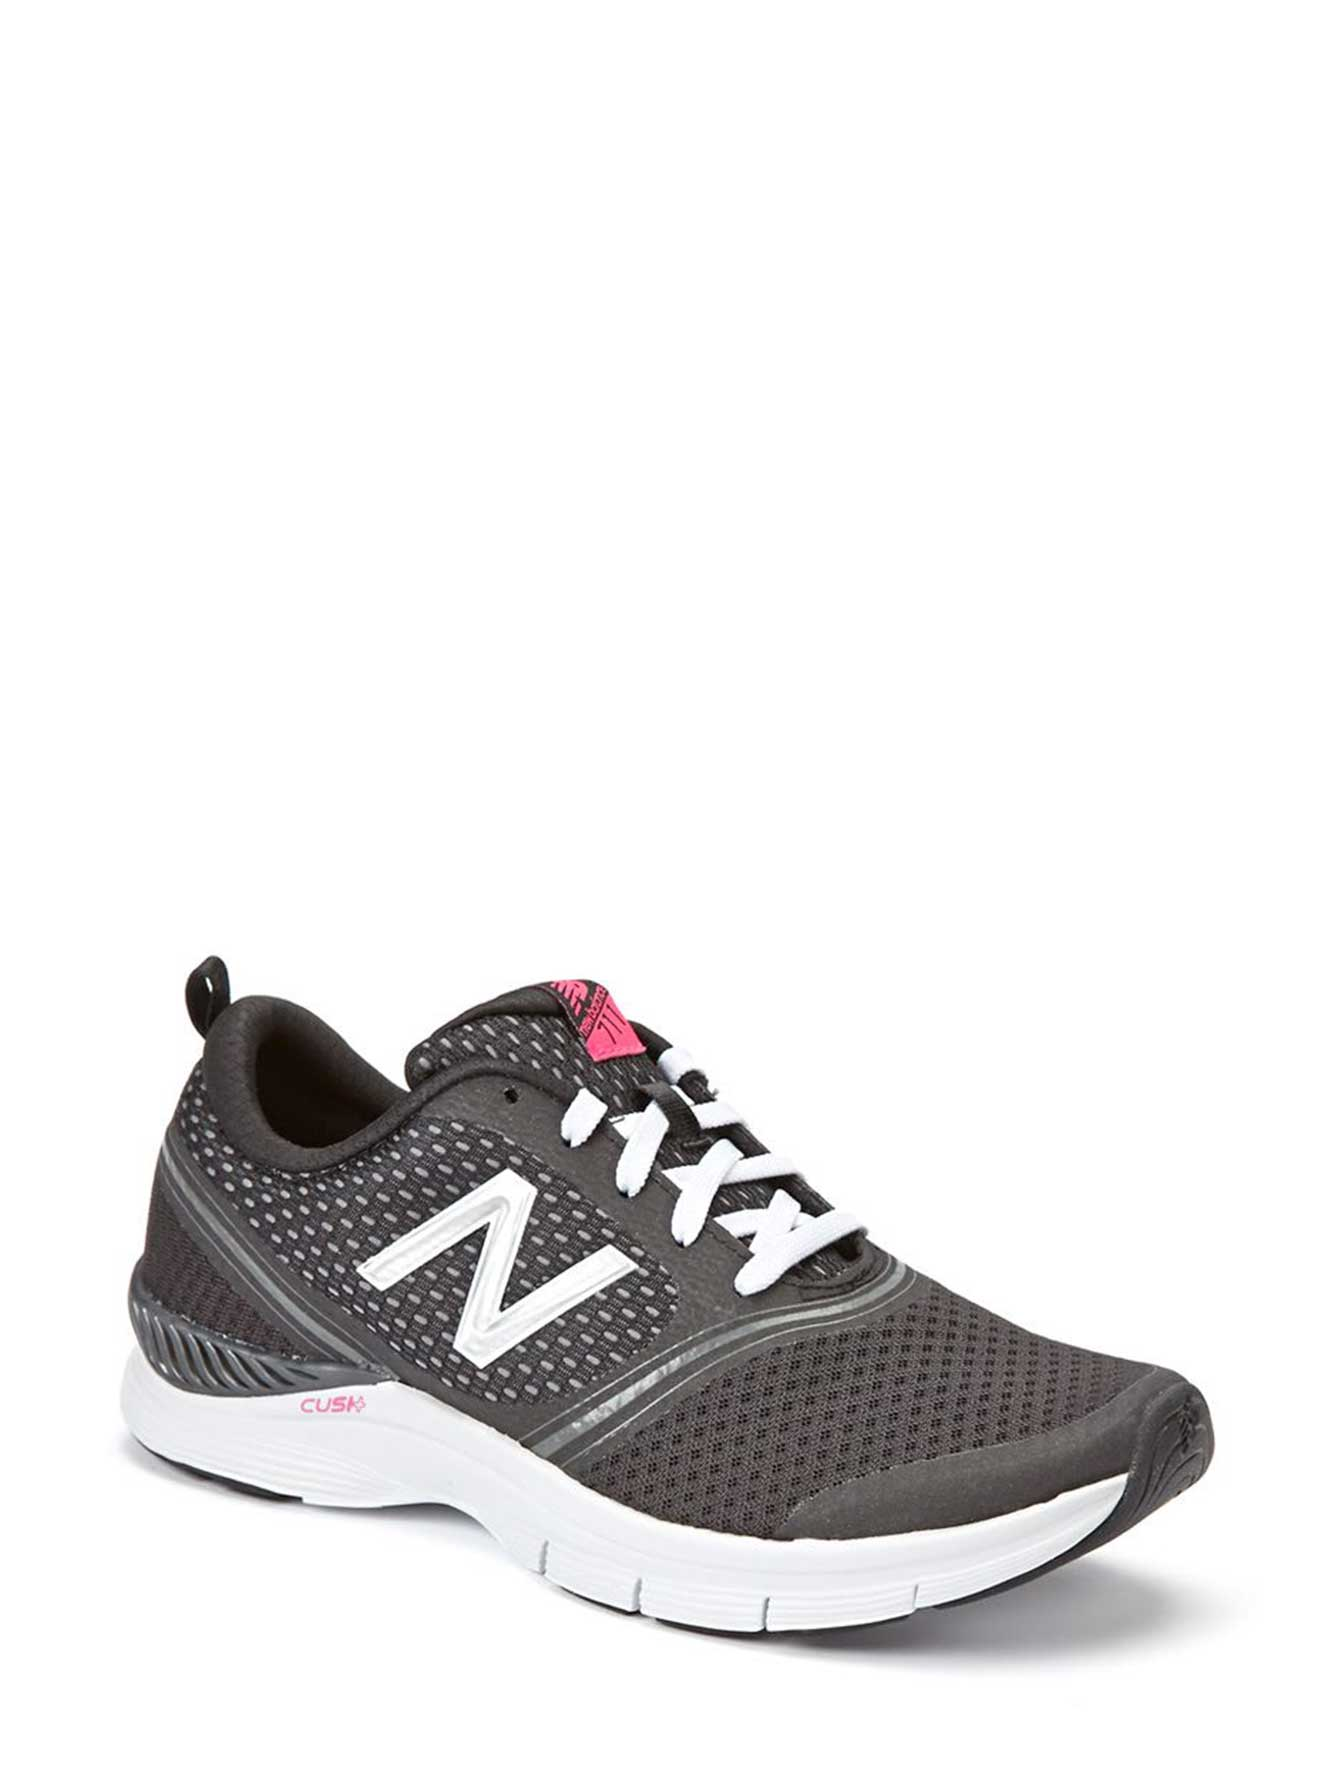 new balance shoes good for gym